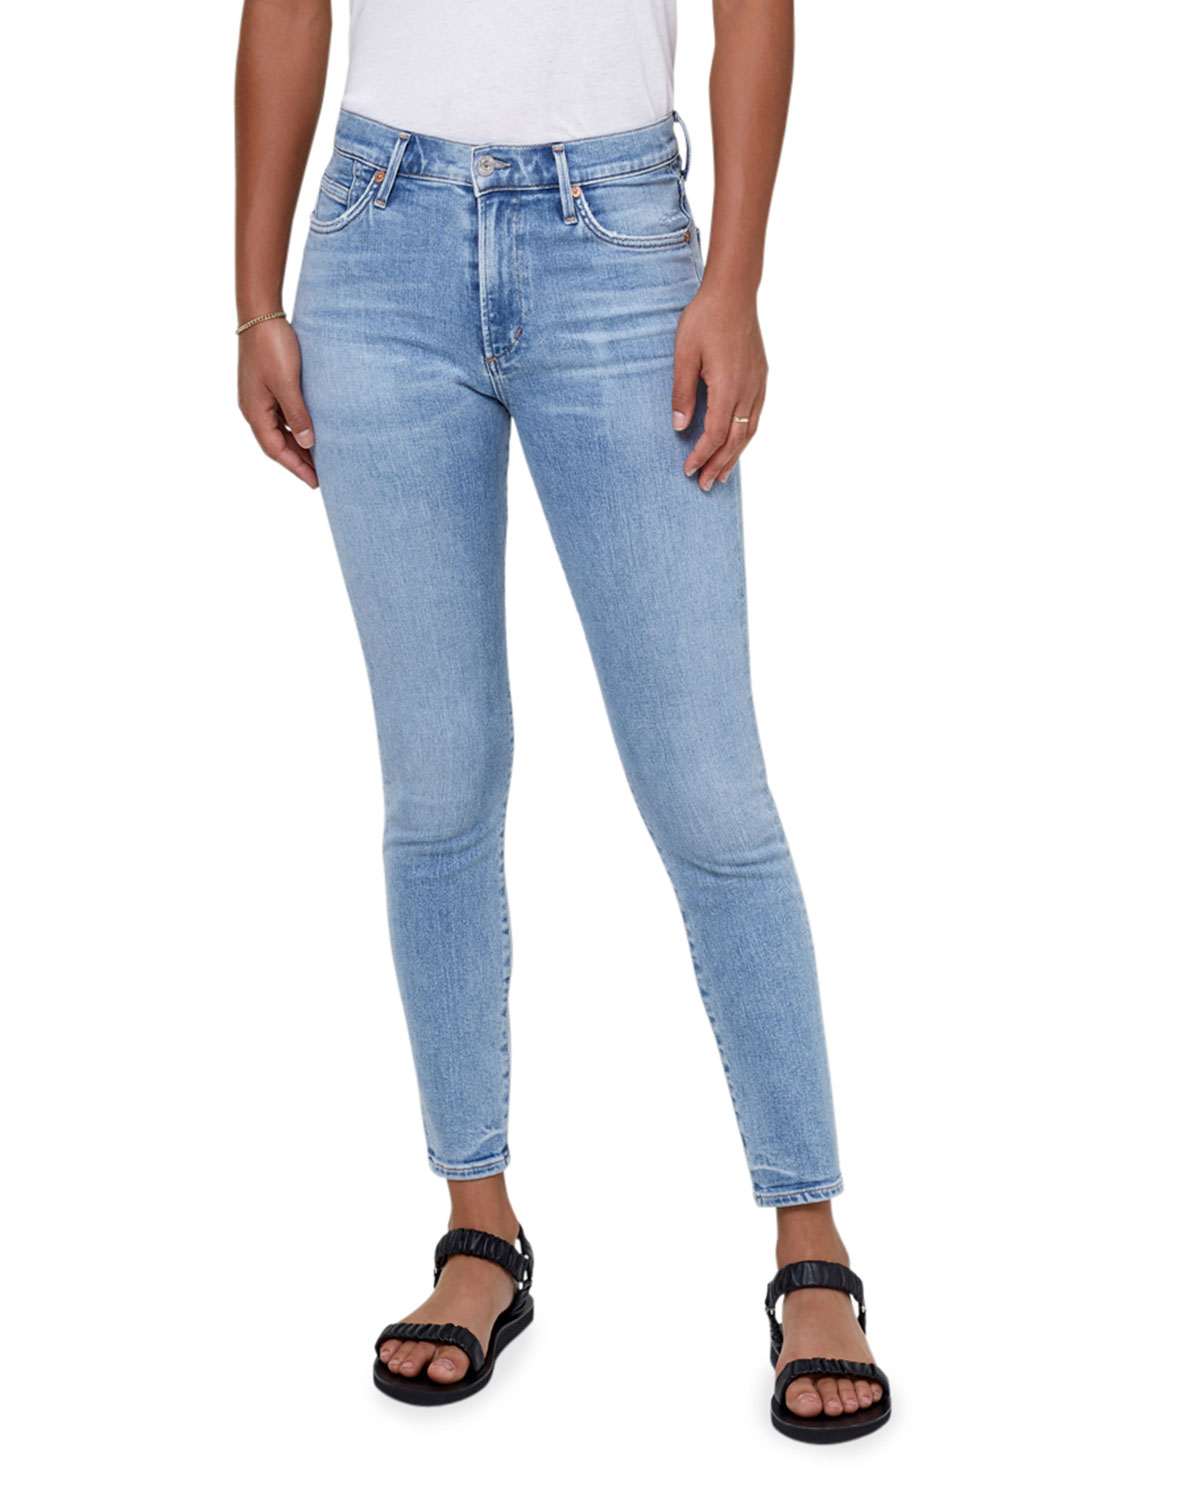 Rocket Mid-Rise Ankle Skinny Jeans